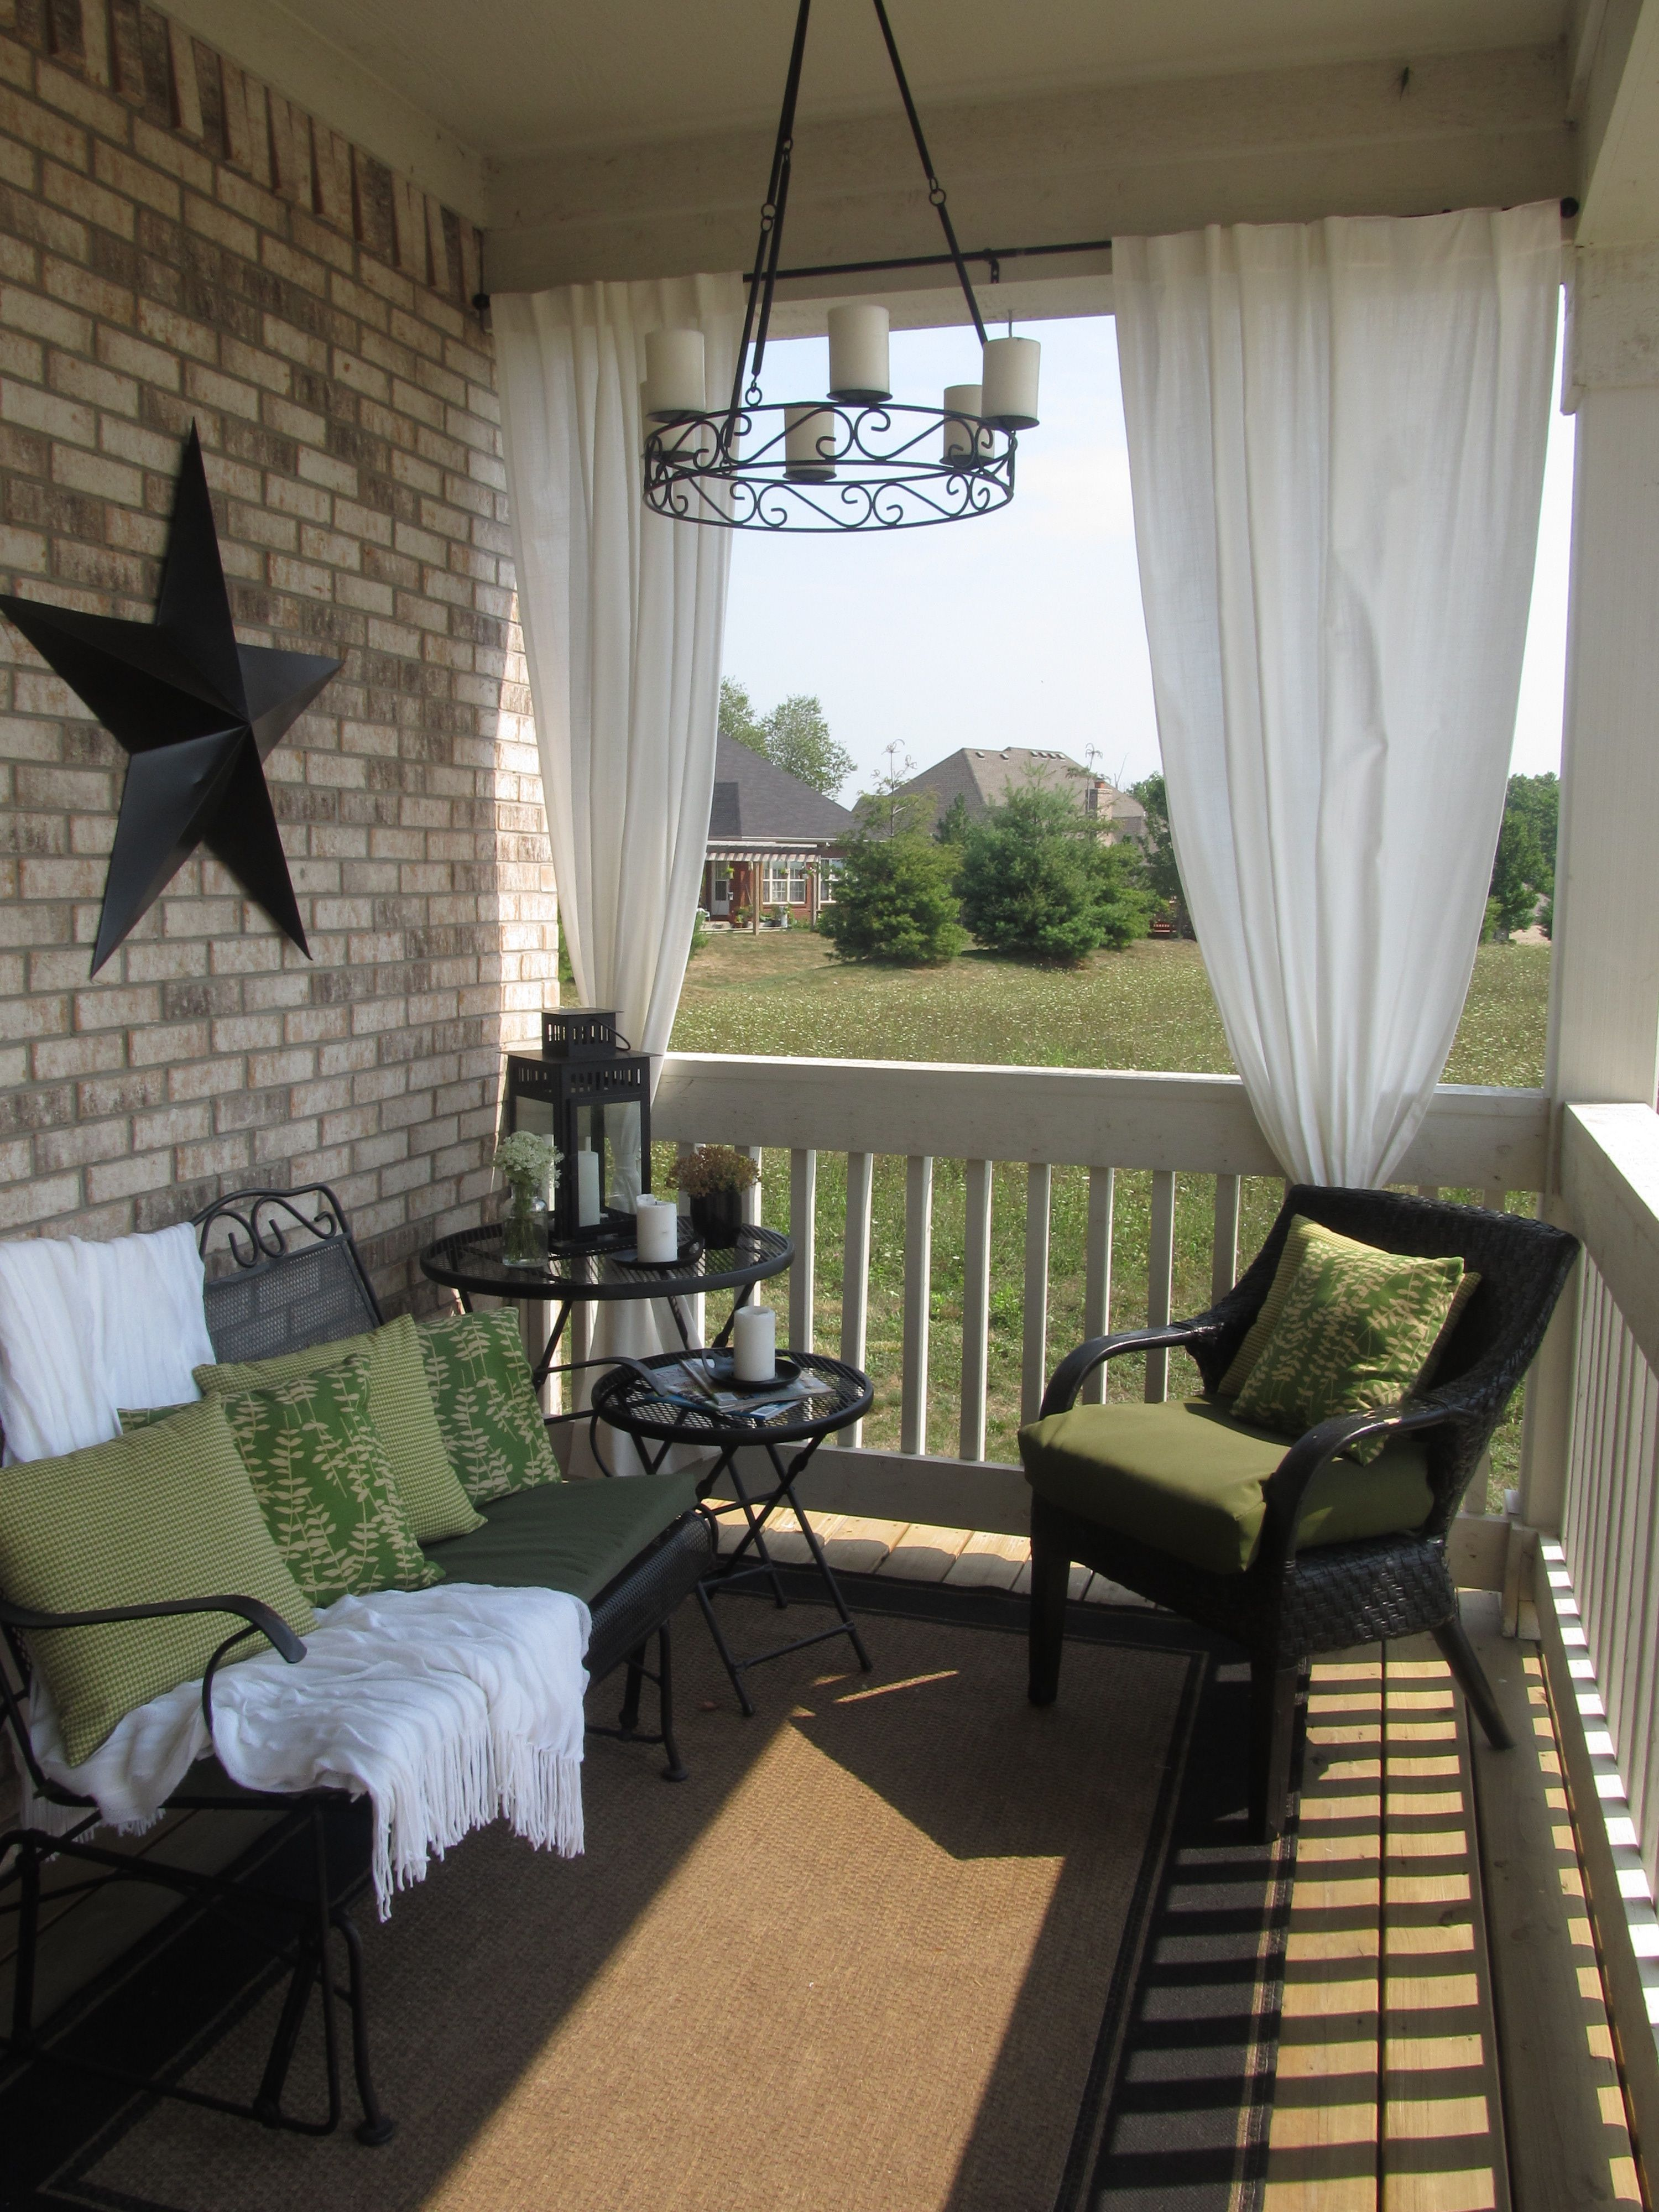 3 Some Excellent Back Porch Ideas For Your Home   Front ... on Apartment Back Porch Ideas id=60247